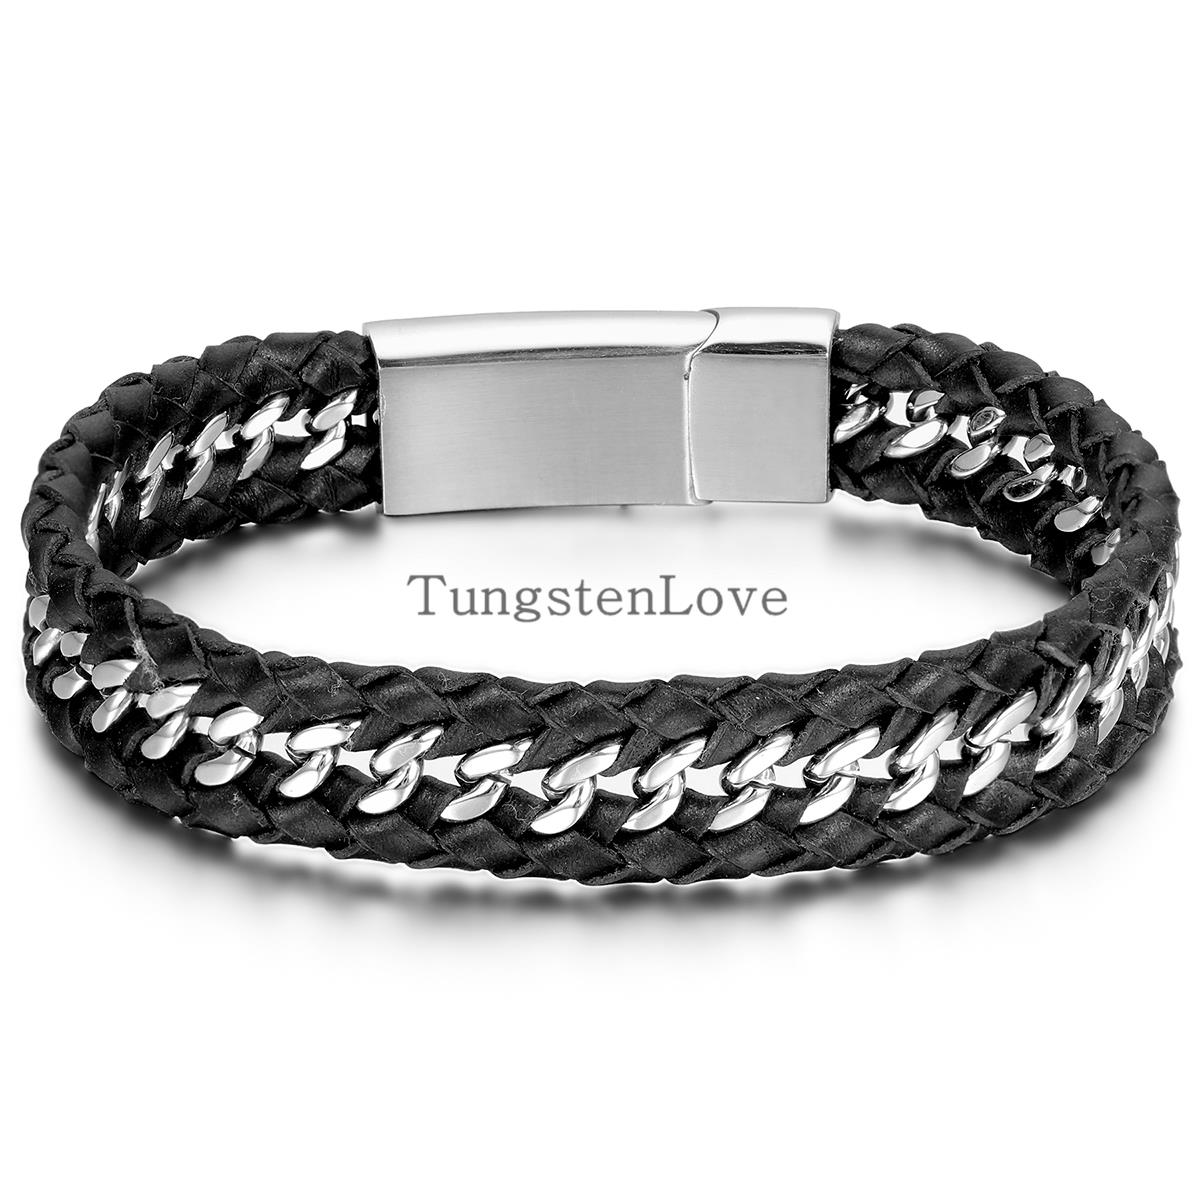 22 1 2cm Fashion Men Jewelry Punk Style Mens Genuine Leather Stainless Steel Bracelet Wheat Wide Cuff Bangle Black Silver In Bracelets From